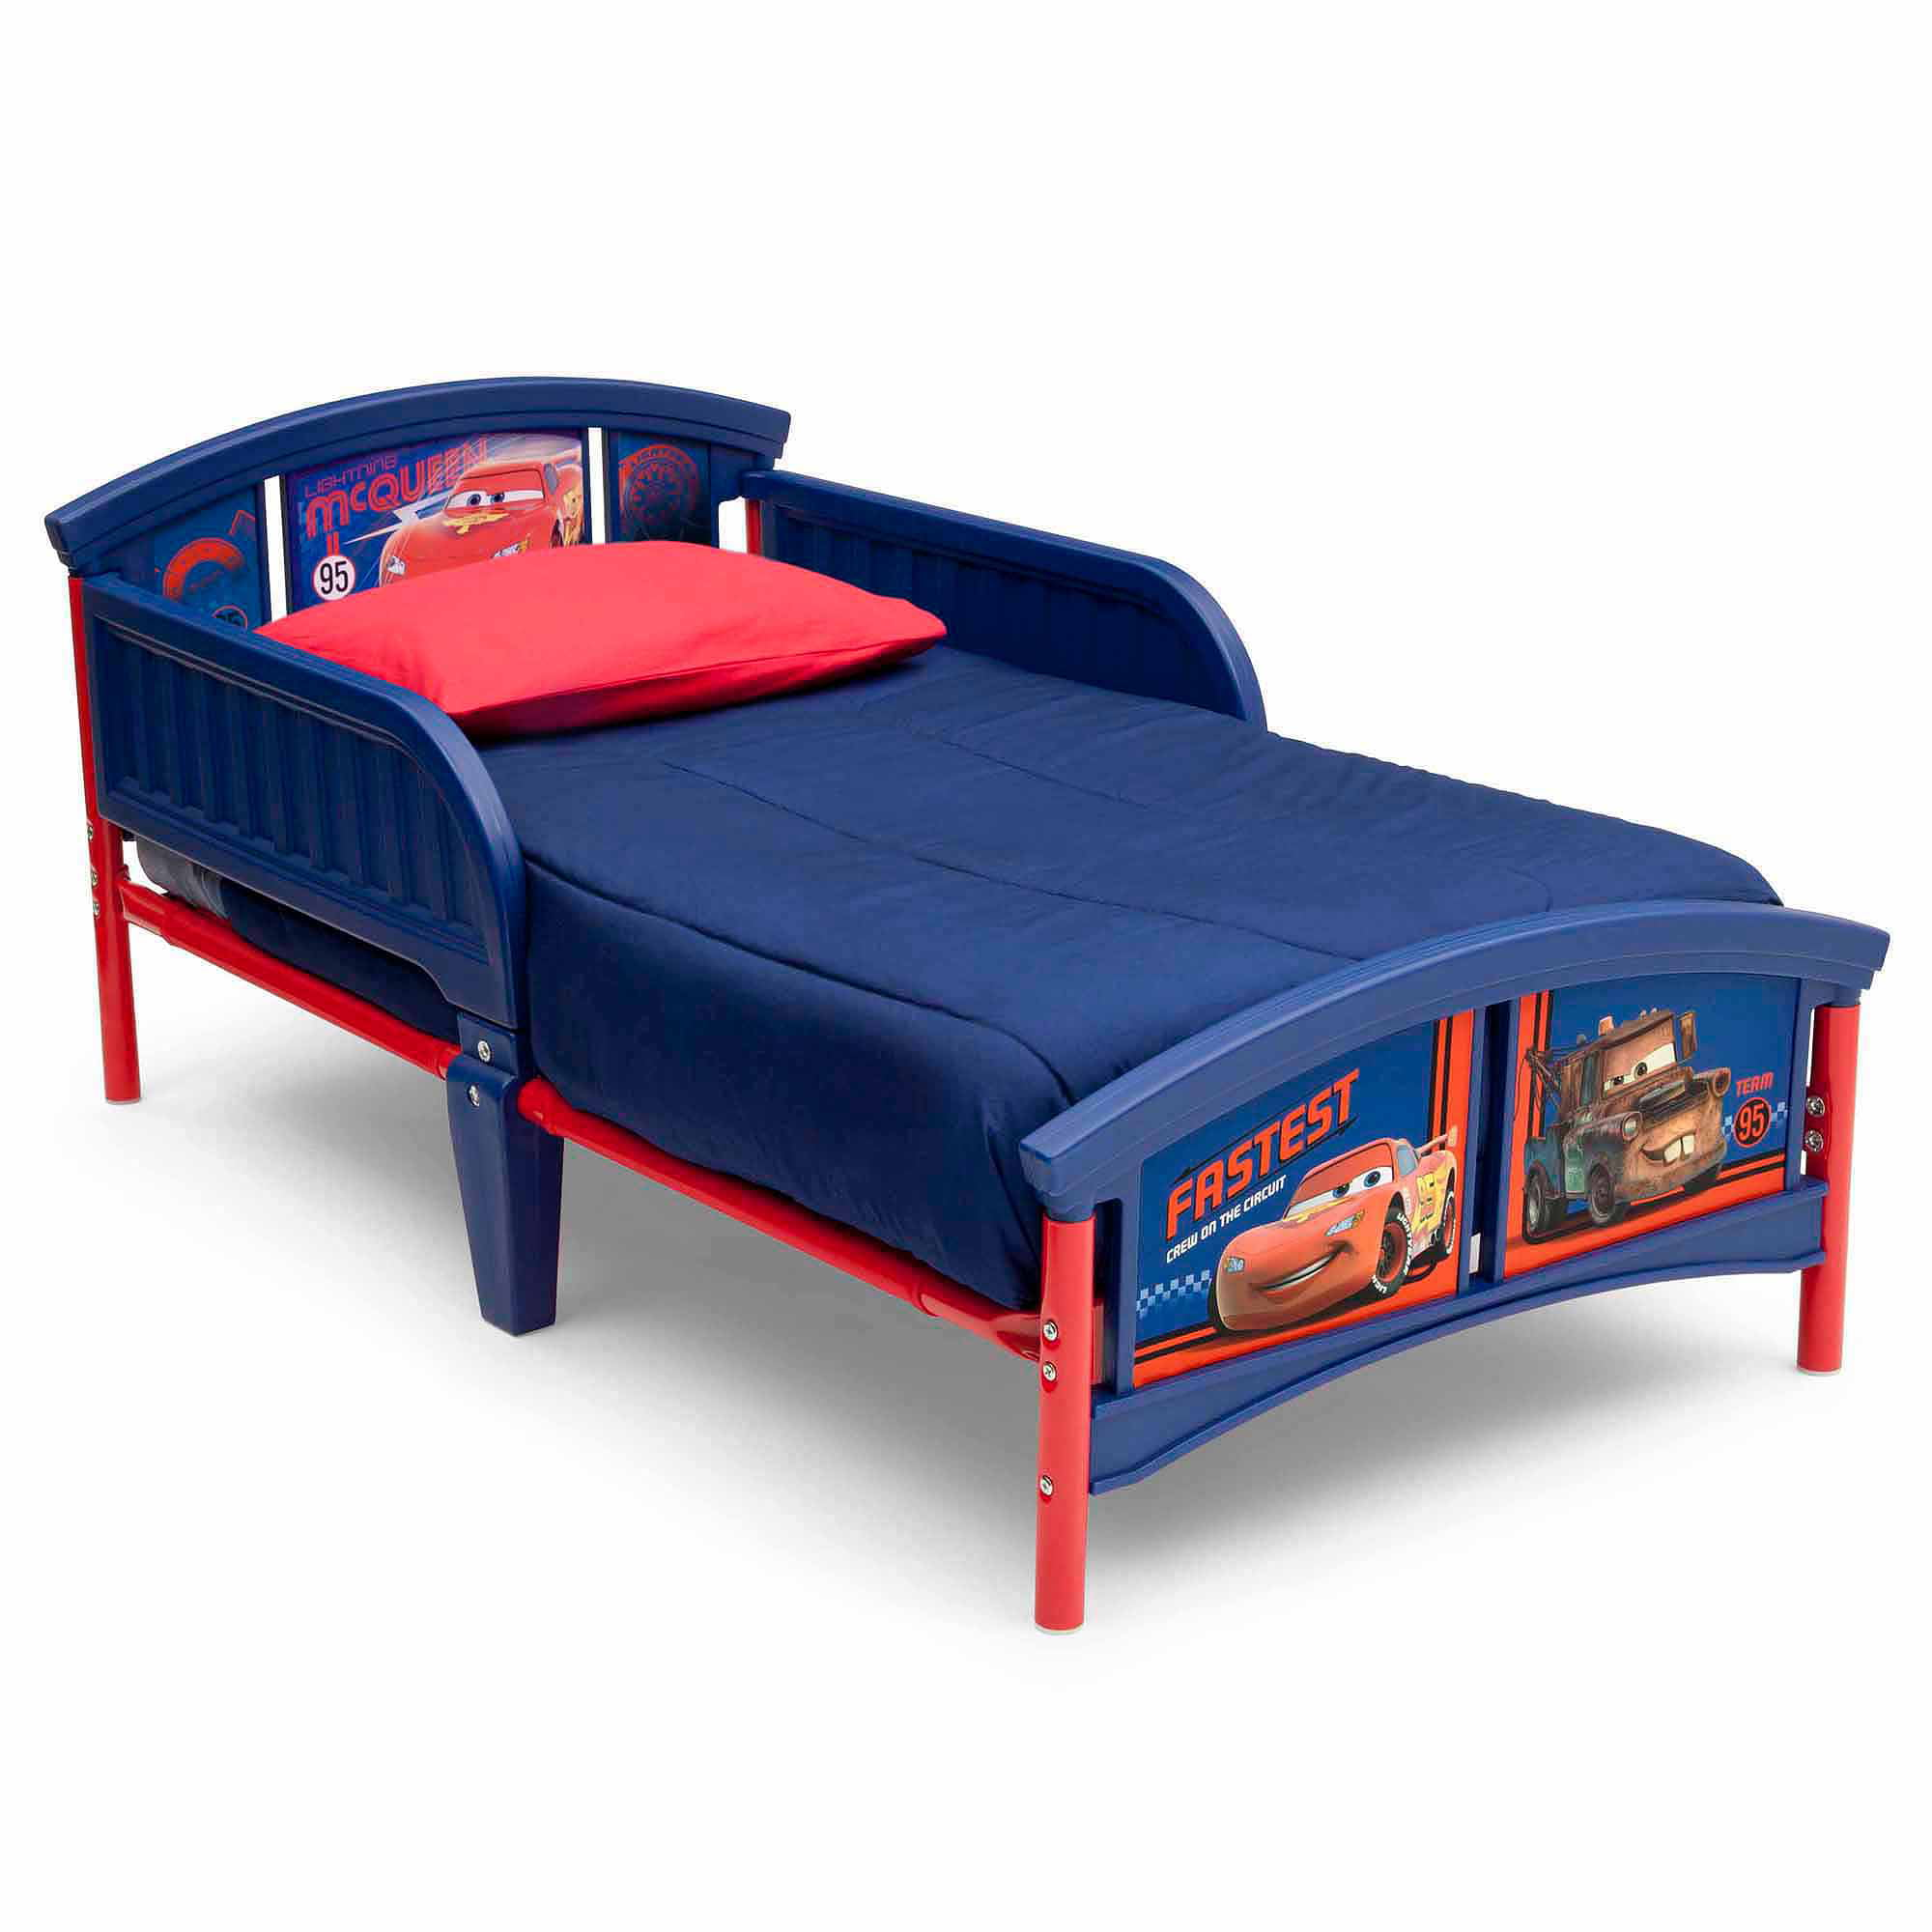 Bed Pictures delta children disney frozen toddler canopy bed - walmart